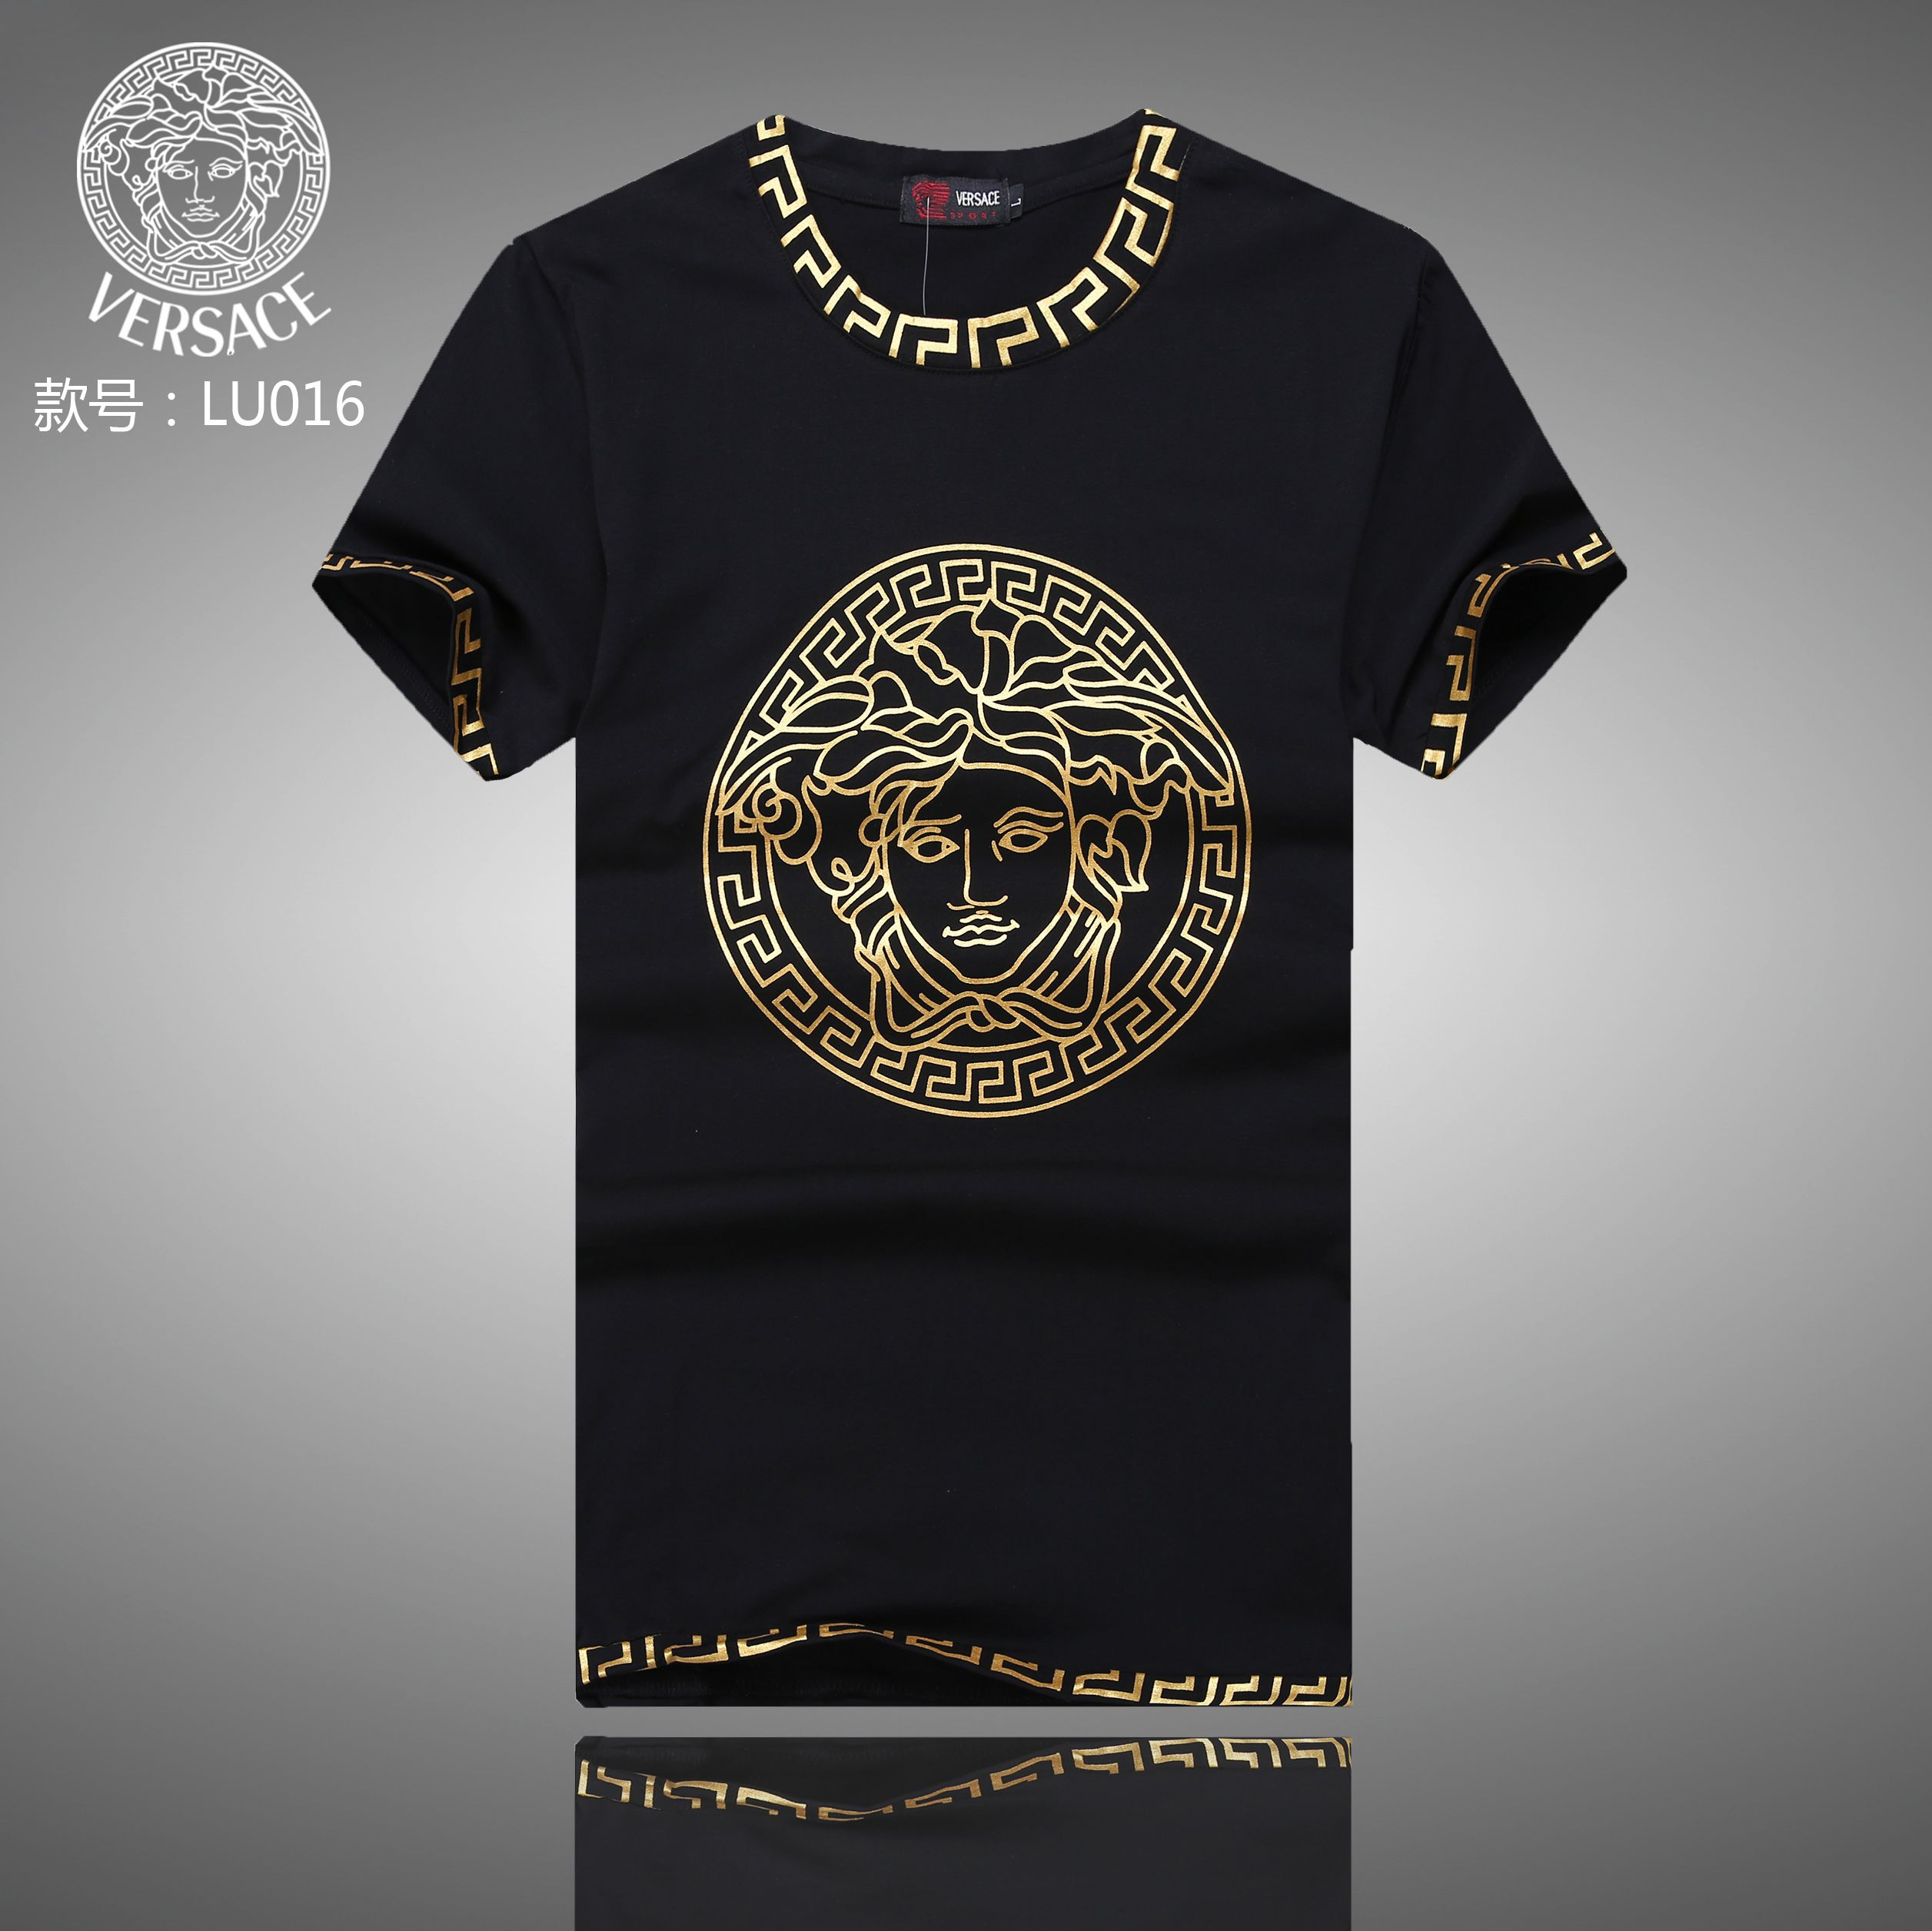 fe6c196f Replica Versace T-Shirts for men #256027 for cheap,$21 USD On sale --  [GT256027] from China